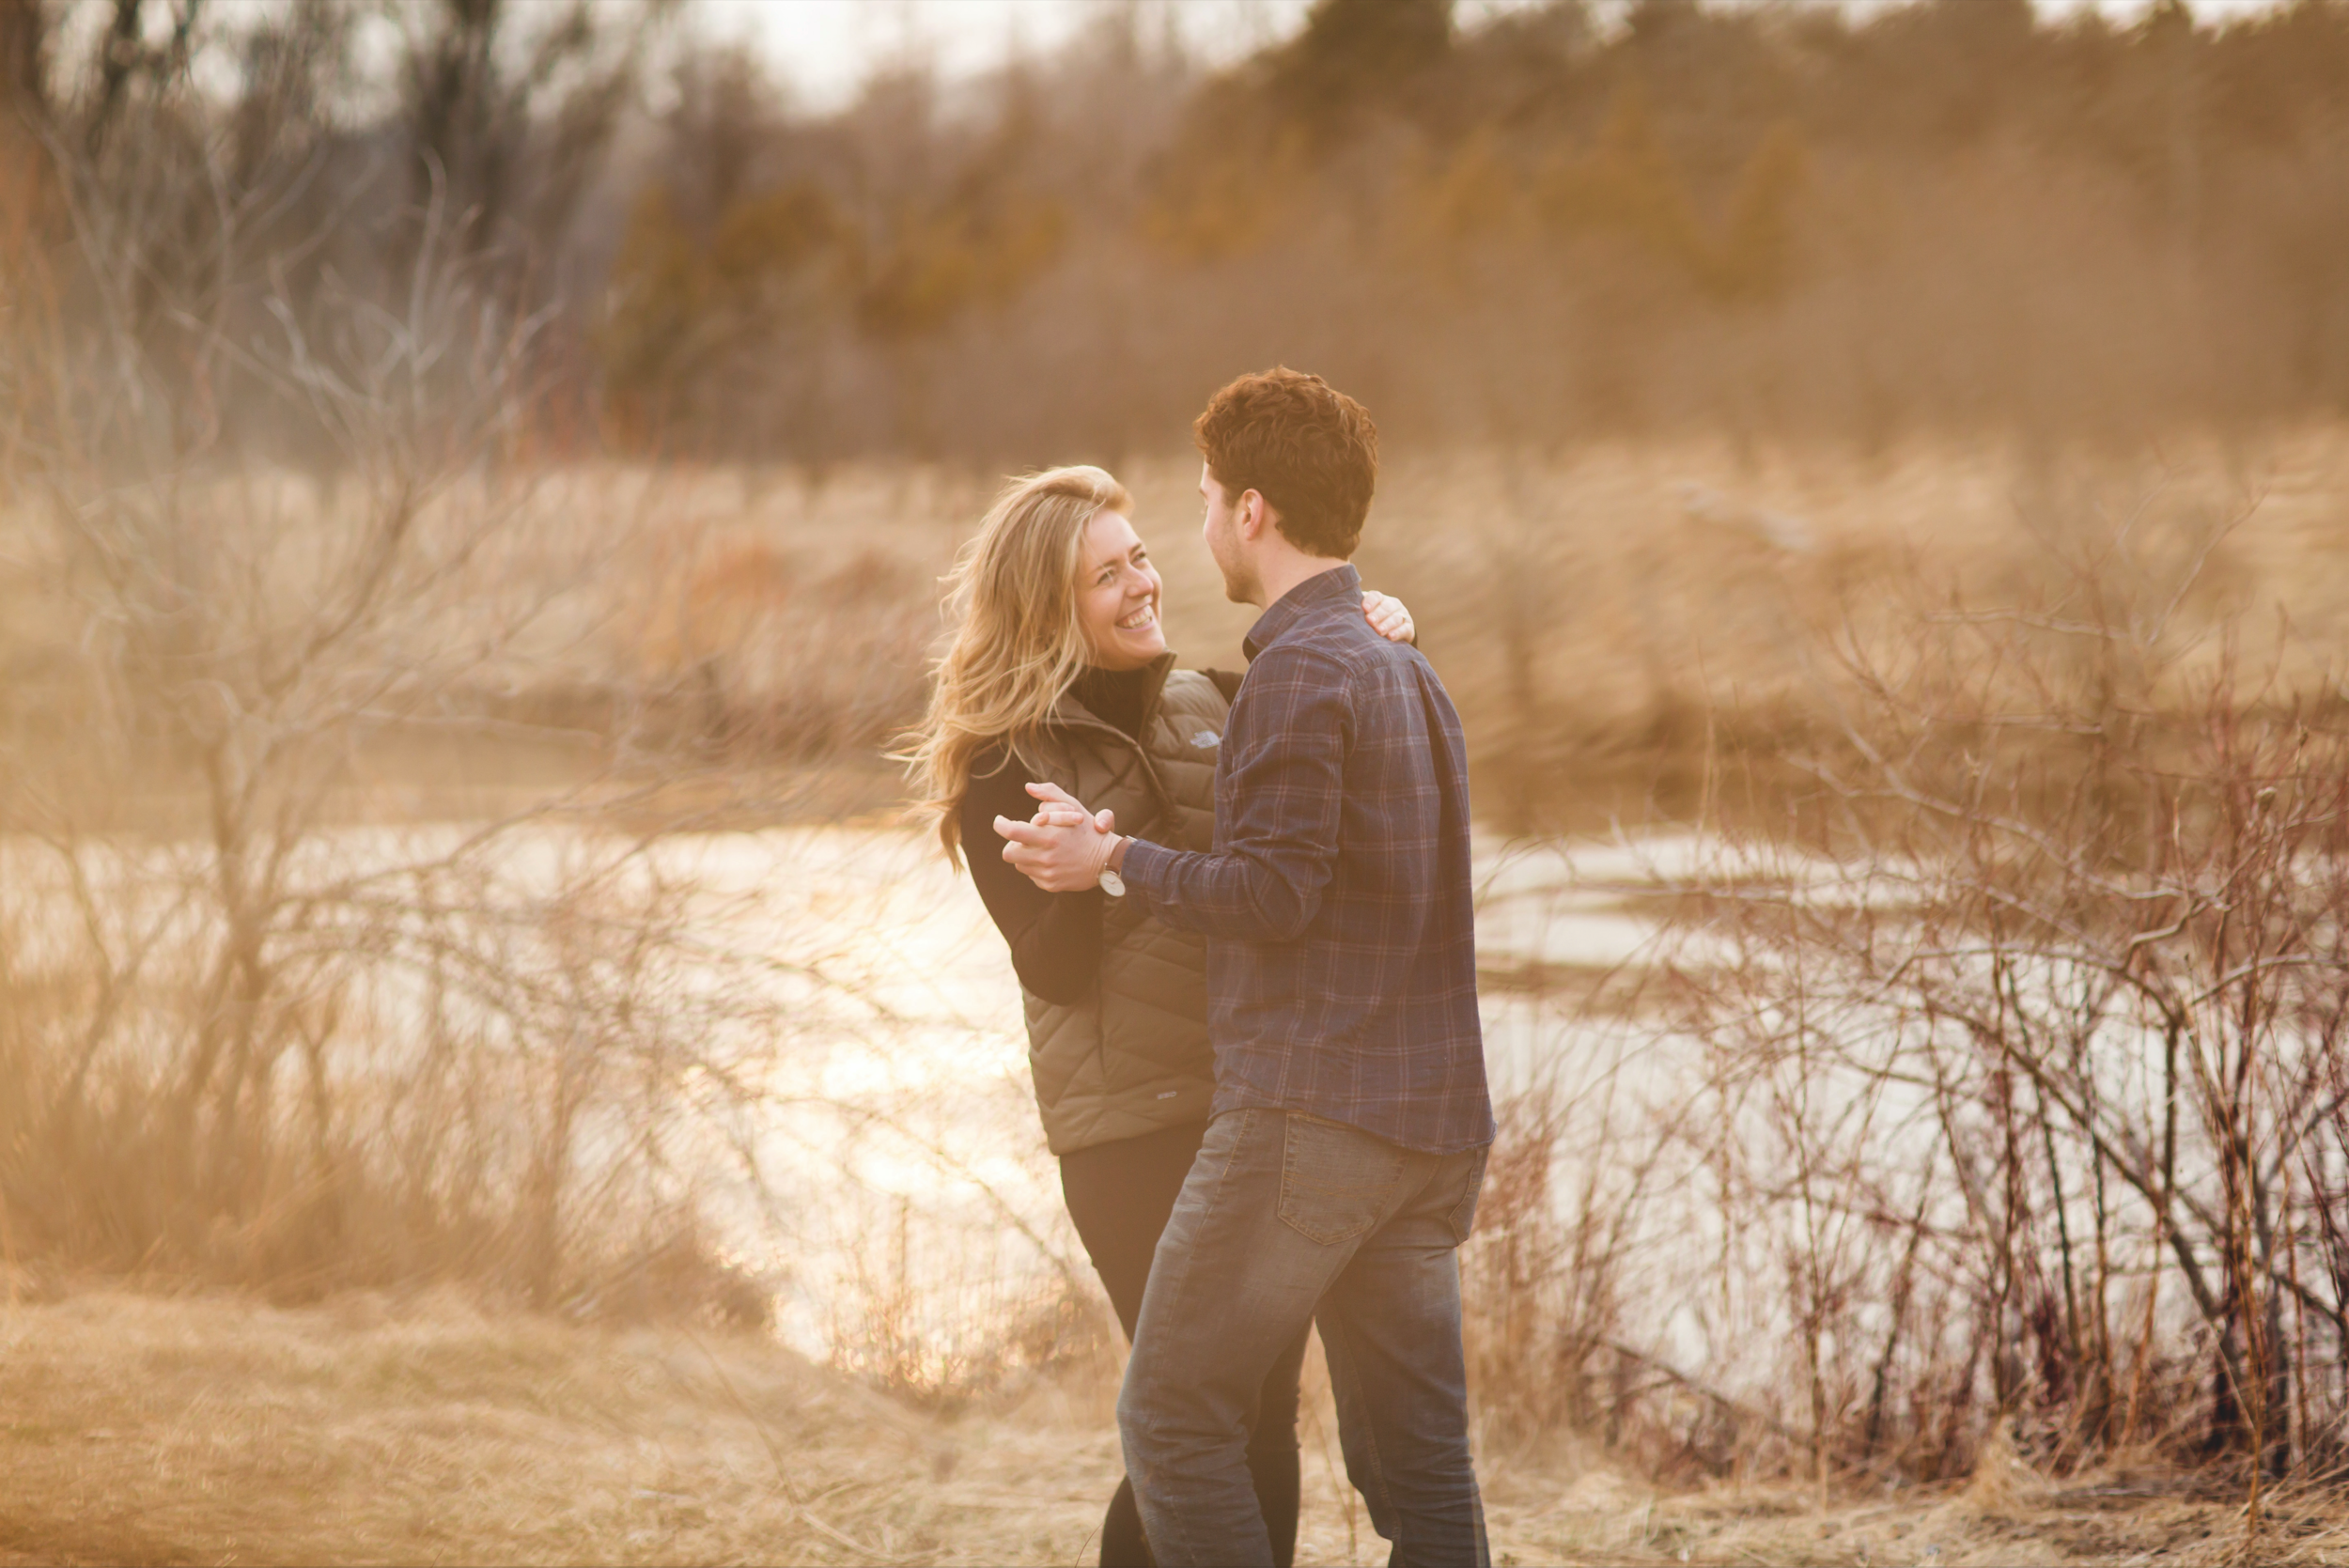 Engagement-Session-Photographer-Guelph-Lake-Hamilton-Toronto-Niagara-Photography-Moments-by-Lauren-Photo-Image-12.png